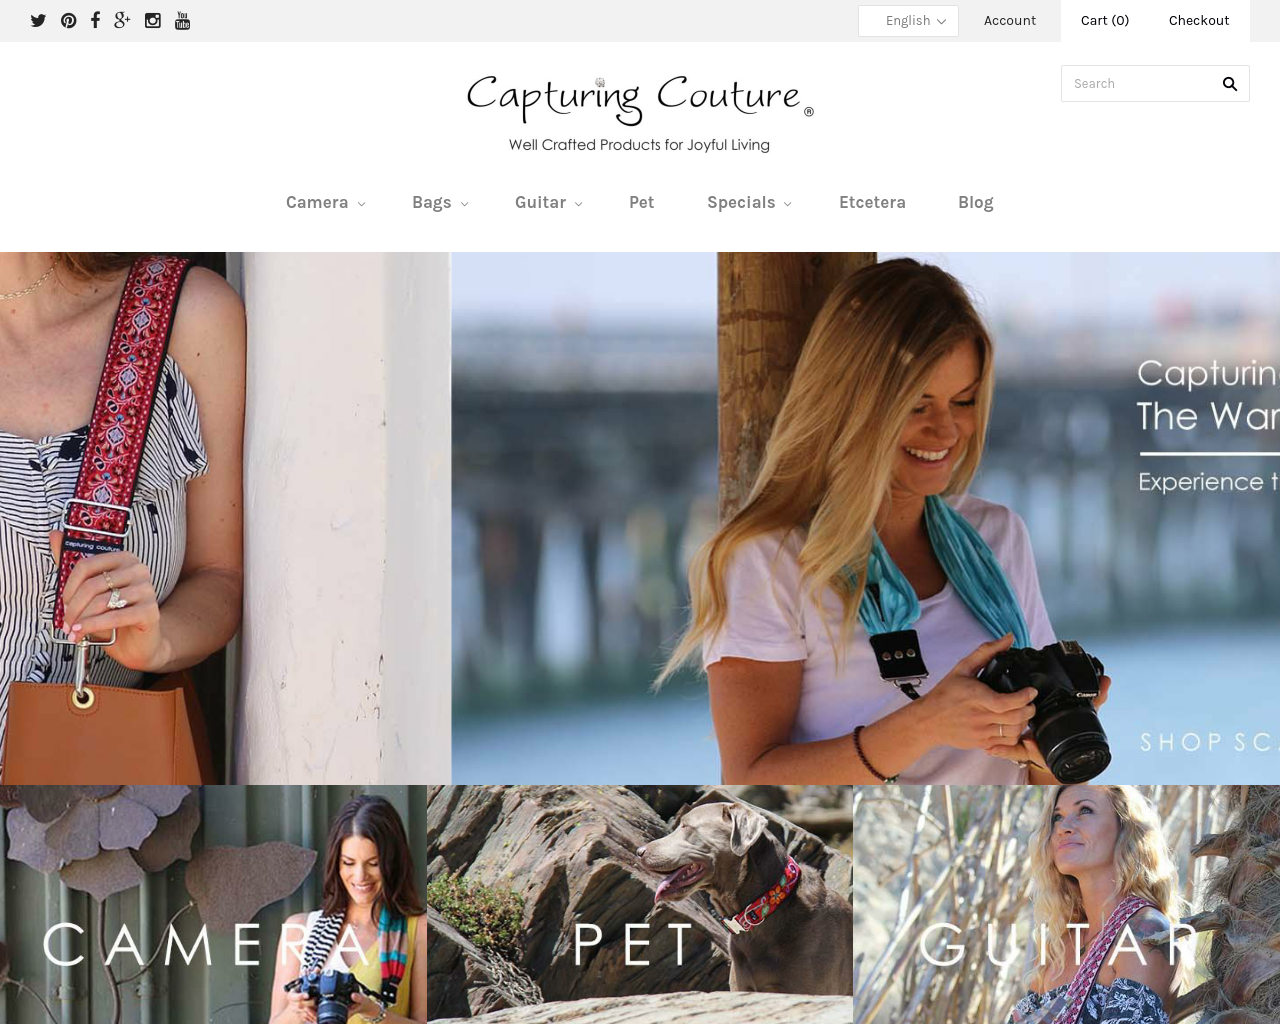 Capturing-Couture-Advertising-Reviews-Pricing